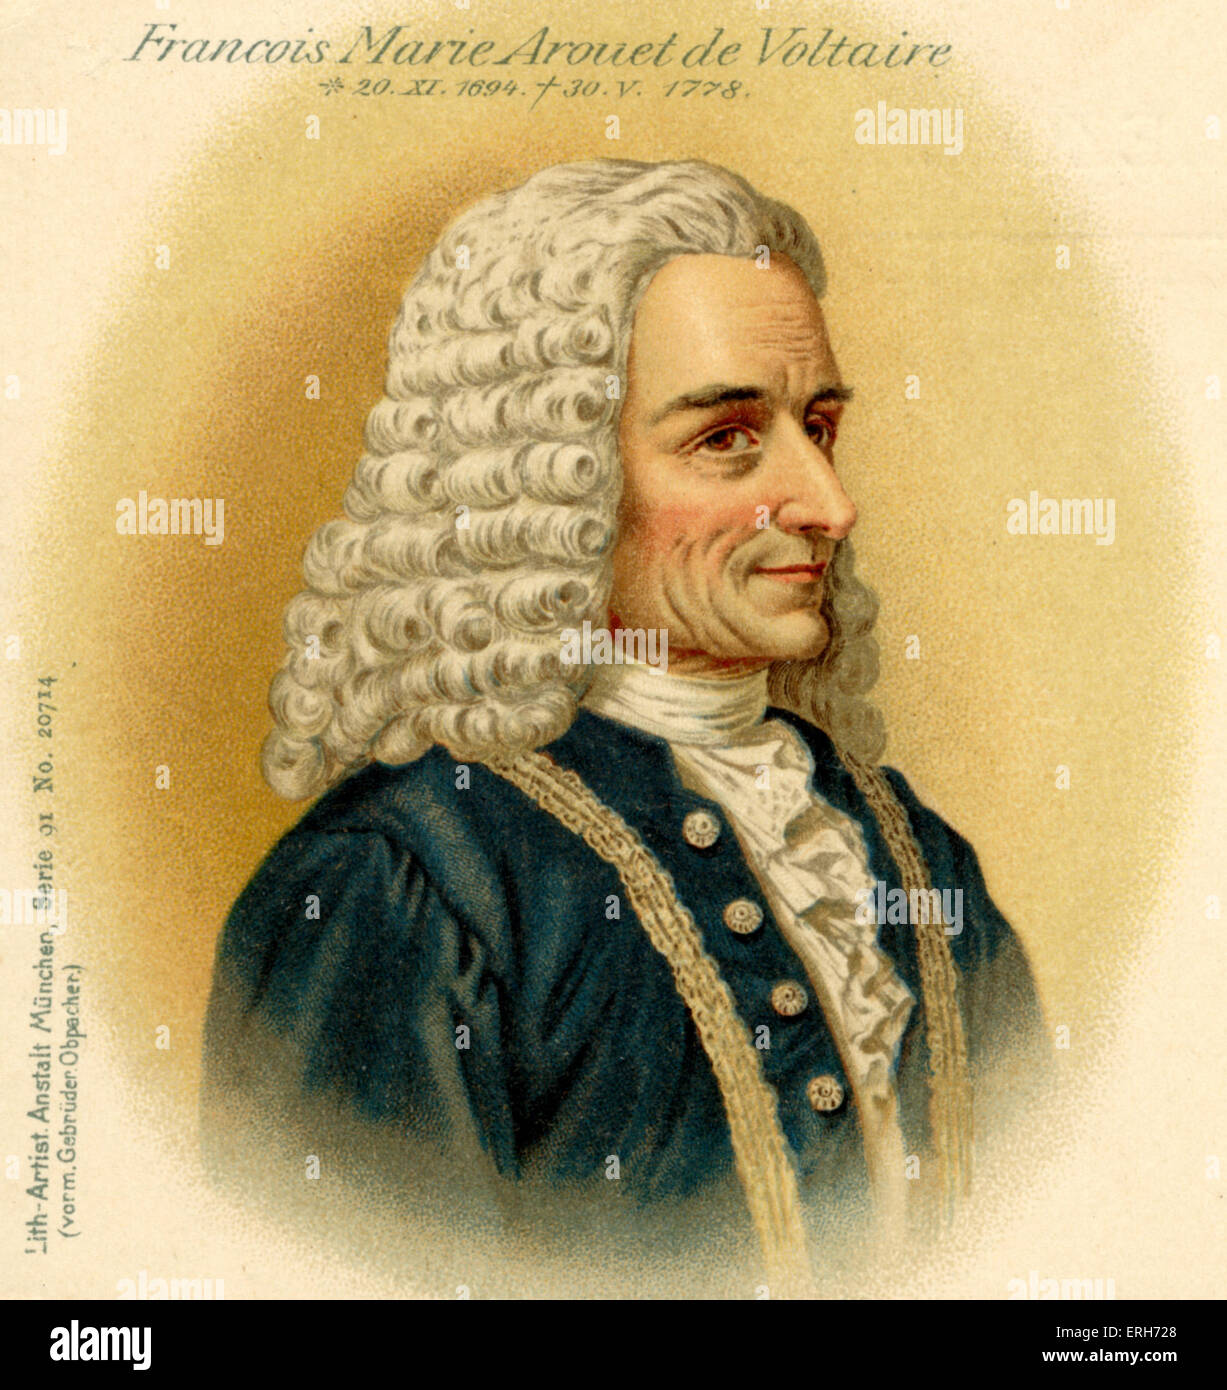 a biography and life work of francois marie arouet a french philosopher Context françois-marie arouet, later known as voltaire, was born in 1694 to a middle-class family in paris at that time, louis xiv was king of france, and the vast majority of people in france lived in crushing poverty.